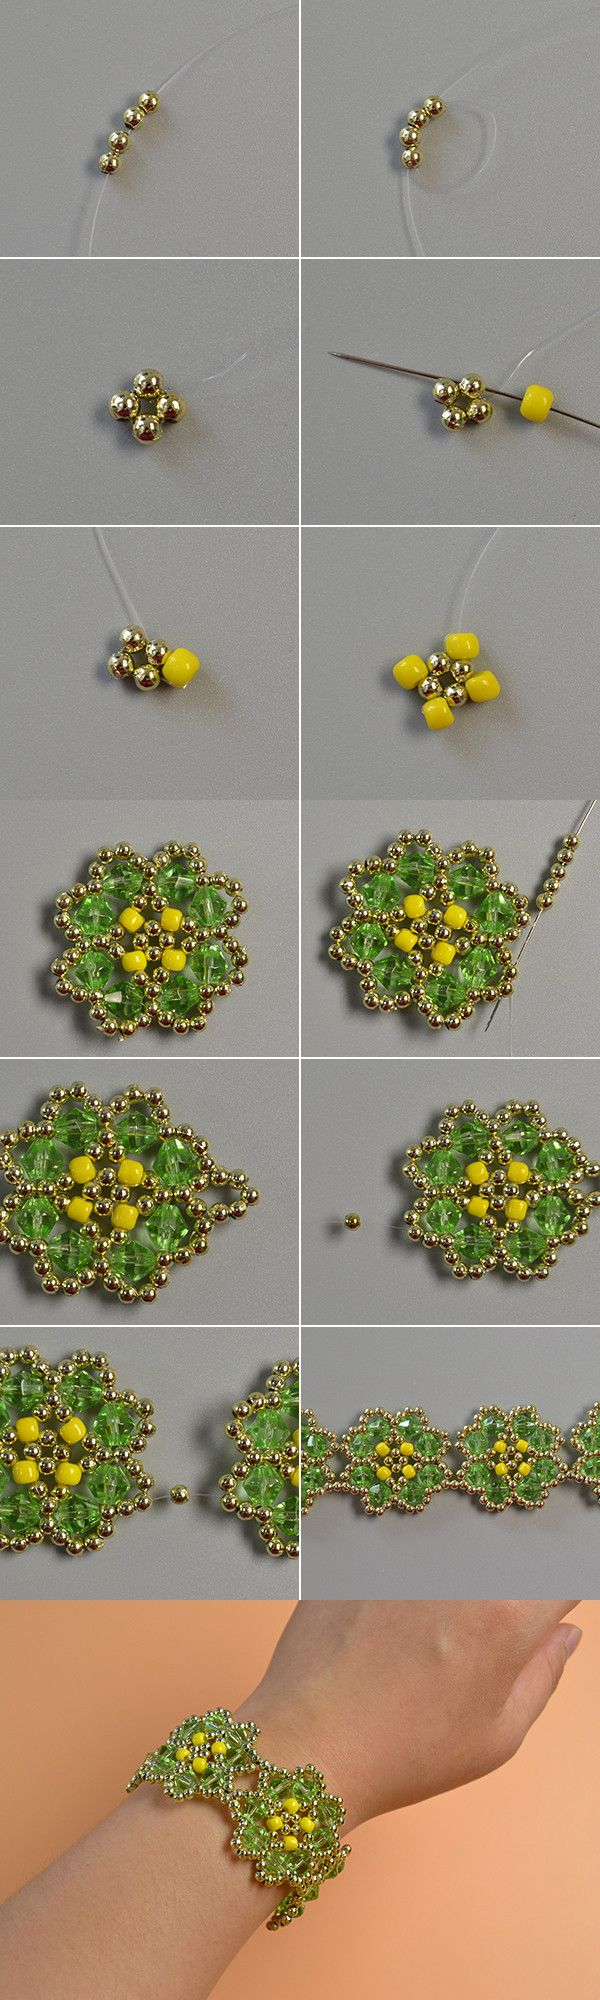 flower beads bracelet, like it? LC.Pandahall.com will share us the tutorial soon.